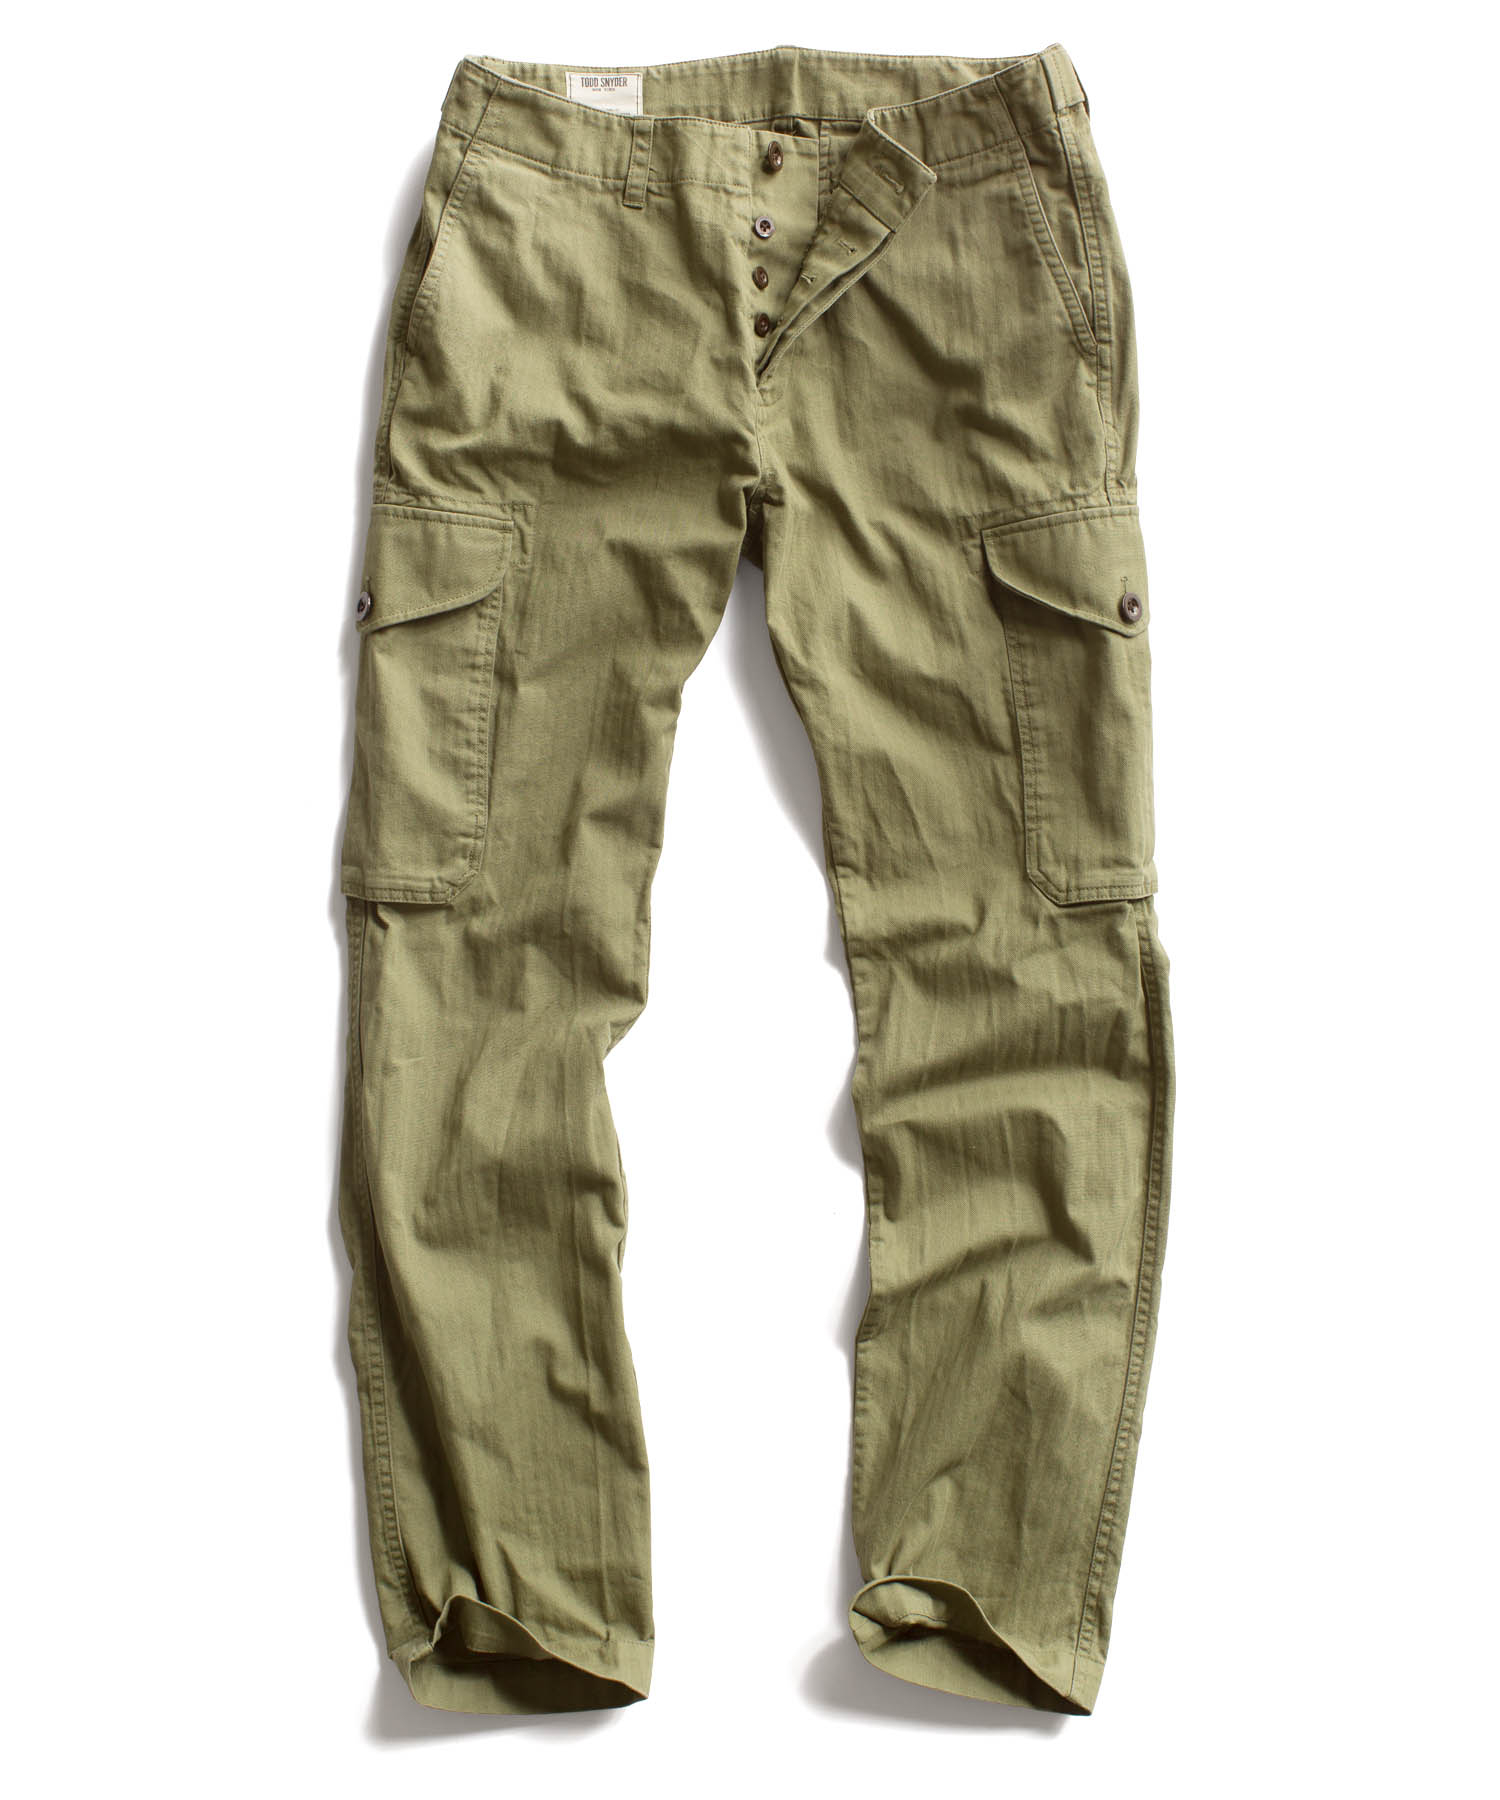 Creative Get The Best Of Both Worlds With The Stylish Yet Comfortable Milana Olive Knit Cargo Jogger Pants From Empyre Crafted With A Soft Fleece Construction And A Relaxed Fit For Comfort, These Cargo Style Joggers Come In A Solid Olive Green